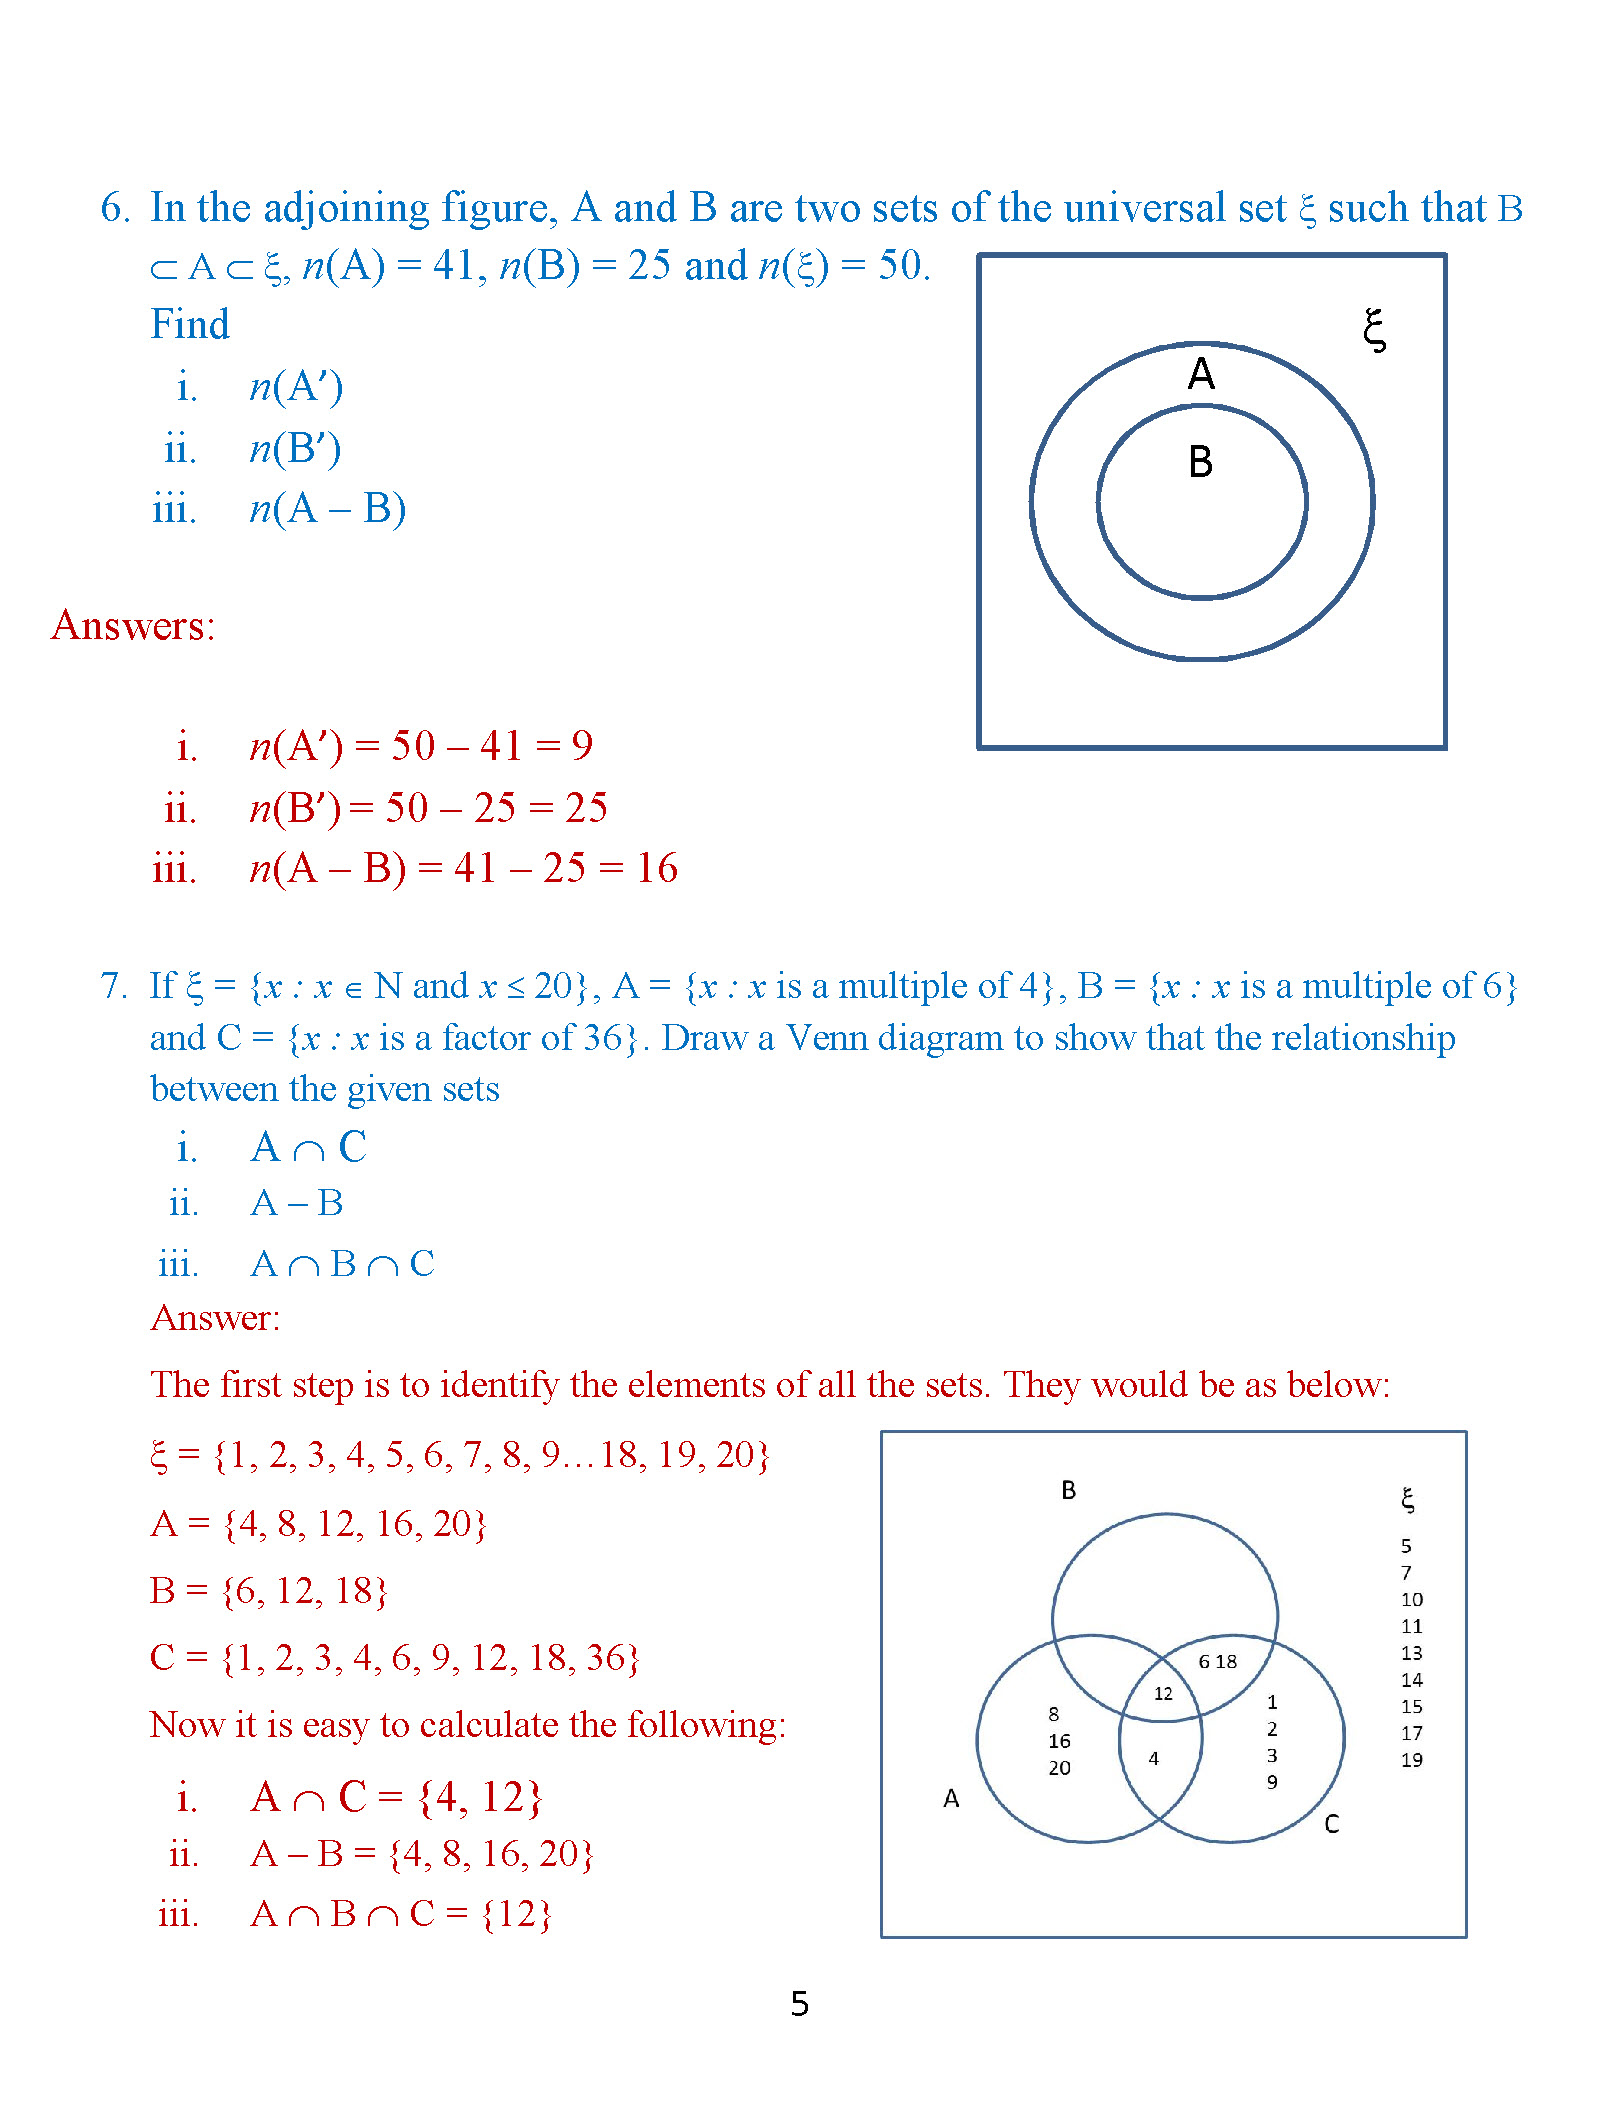 4 set venn diagram problems and solutions new wiring diagram 2018 icse math portal for k 12 solving problems using venn diagrams regent prep problem venn diagrams venn diagram comparing plant and animal cells on 4 set pooptronica